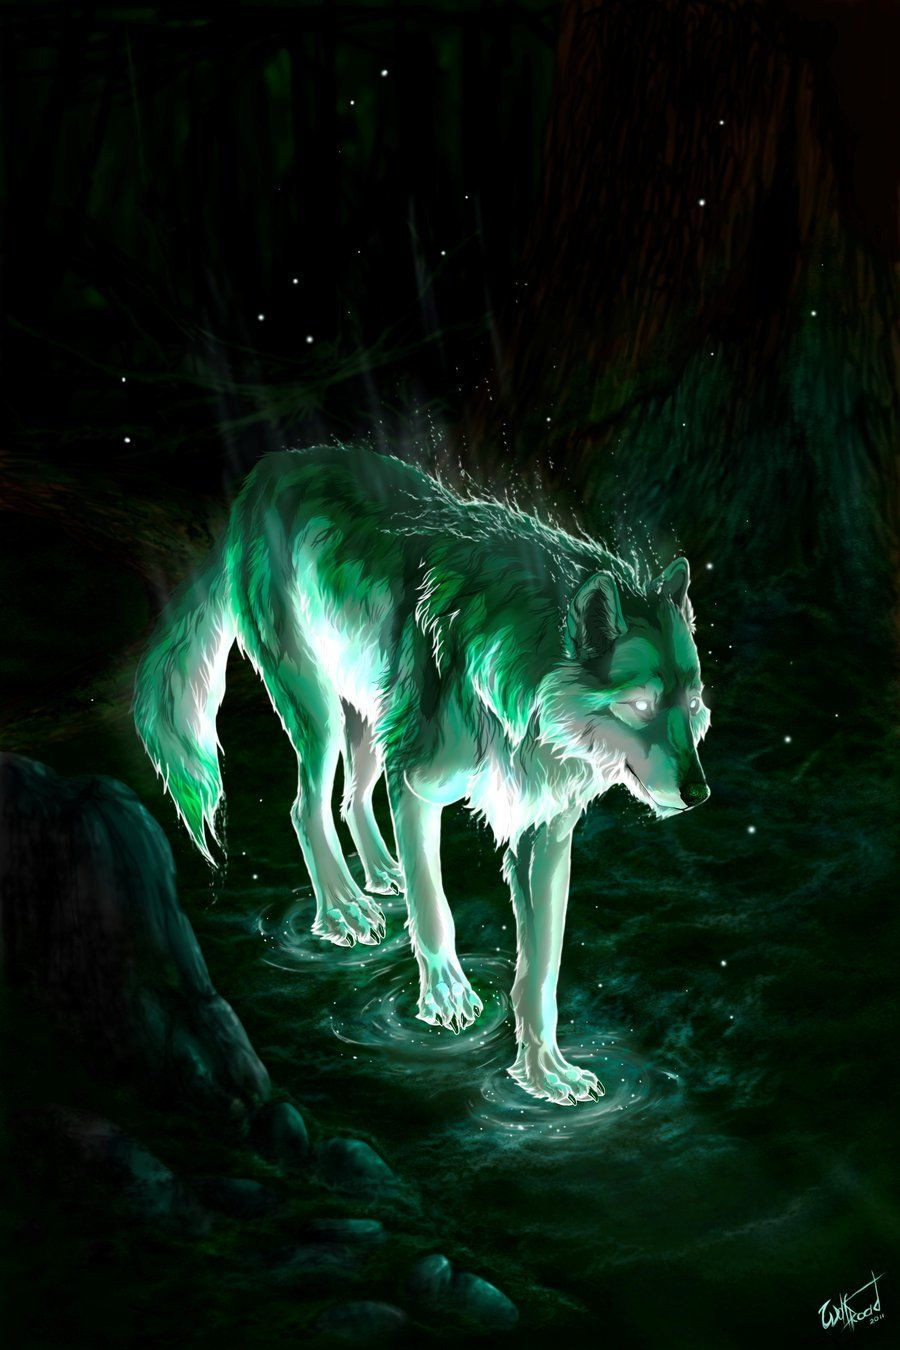 On the night of the starless sky the star wolf comes down for Cool fantasy drawings